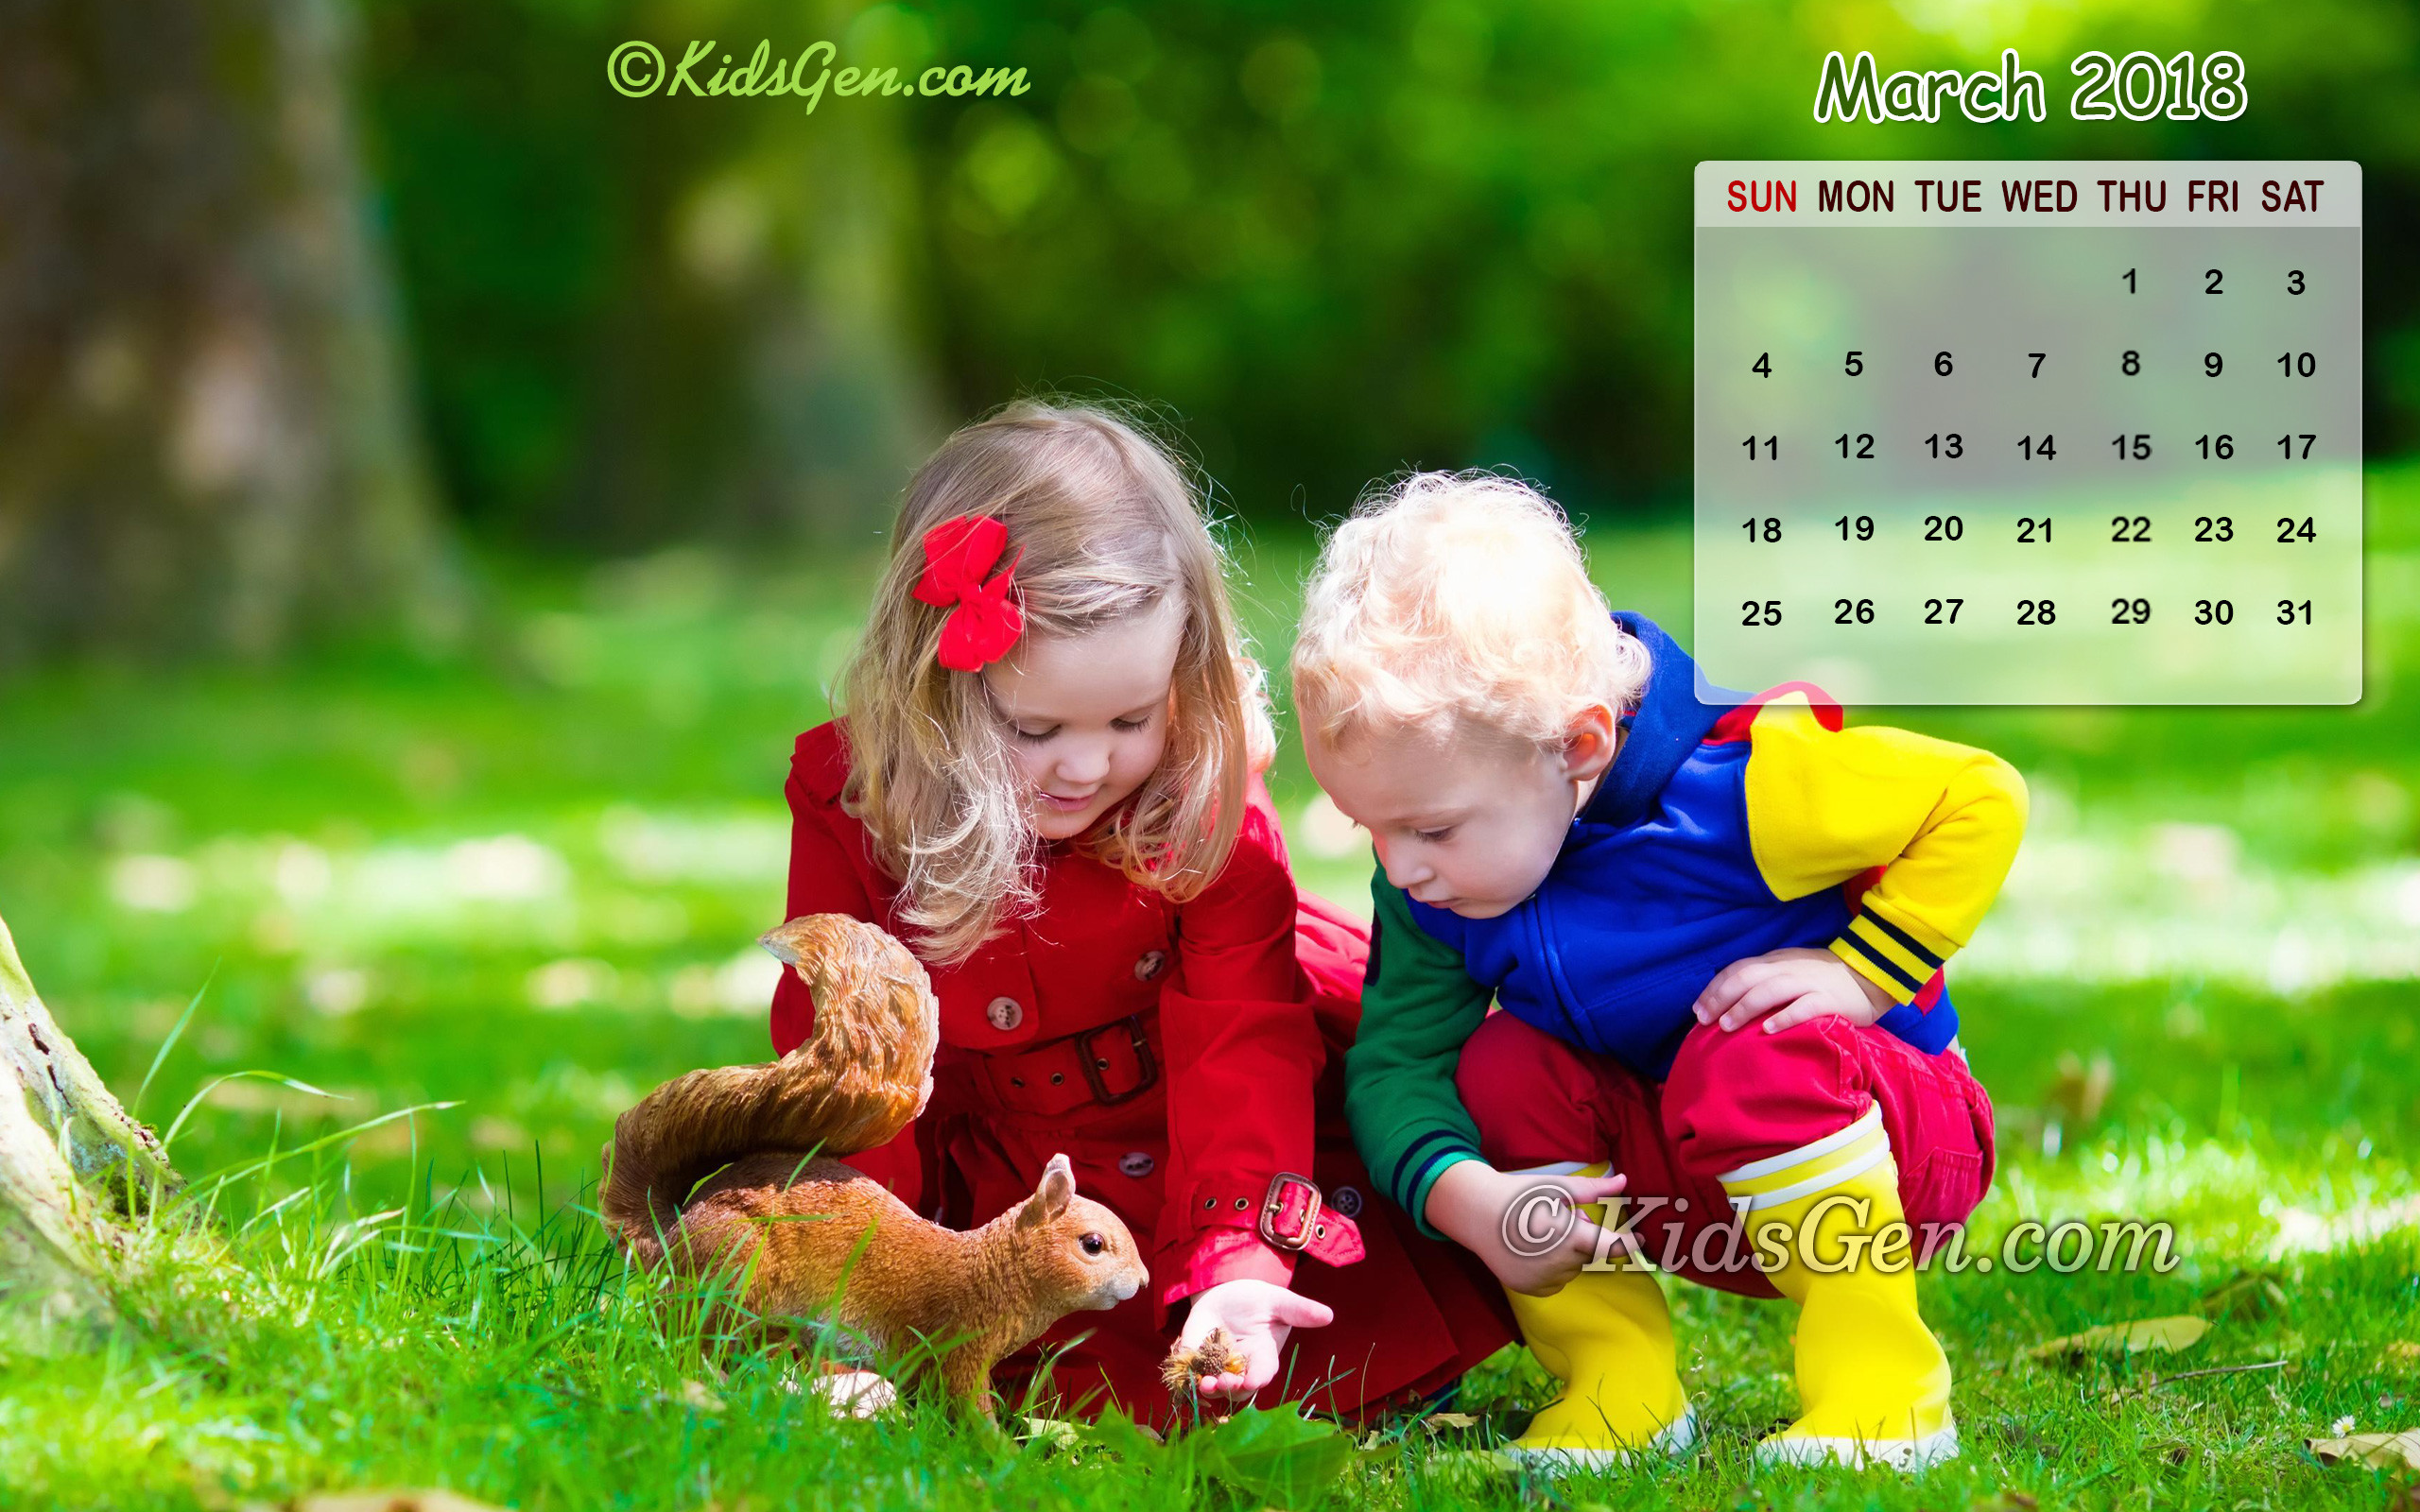 Res: 2560x1600, March 2018 Calendar Wallpaper of two little kids